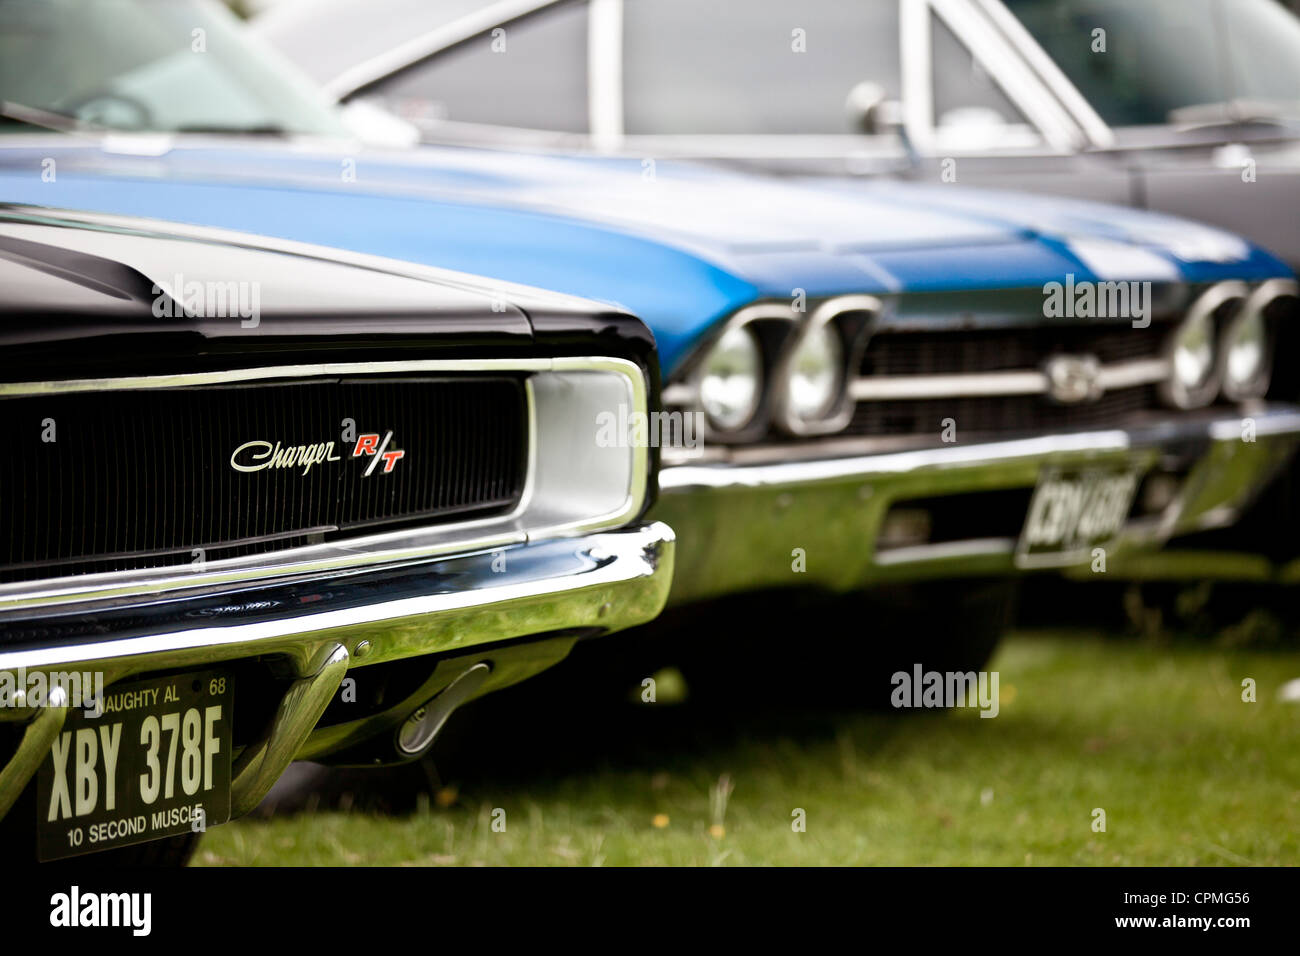 American Muscle cars Stock Photo: 48394898 - Alamy